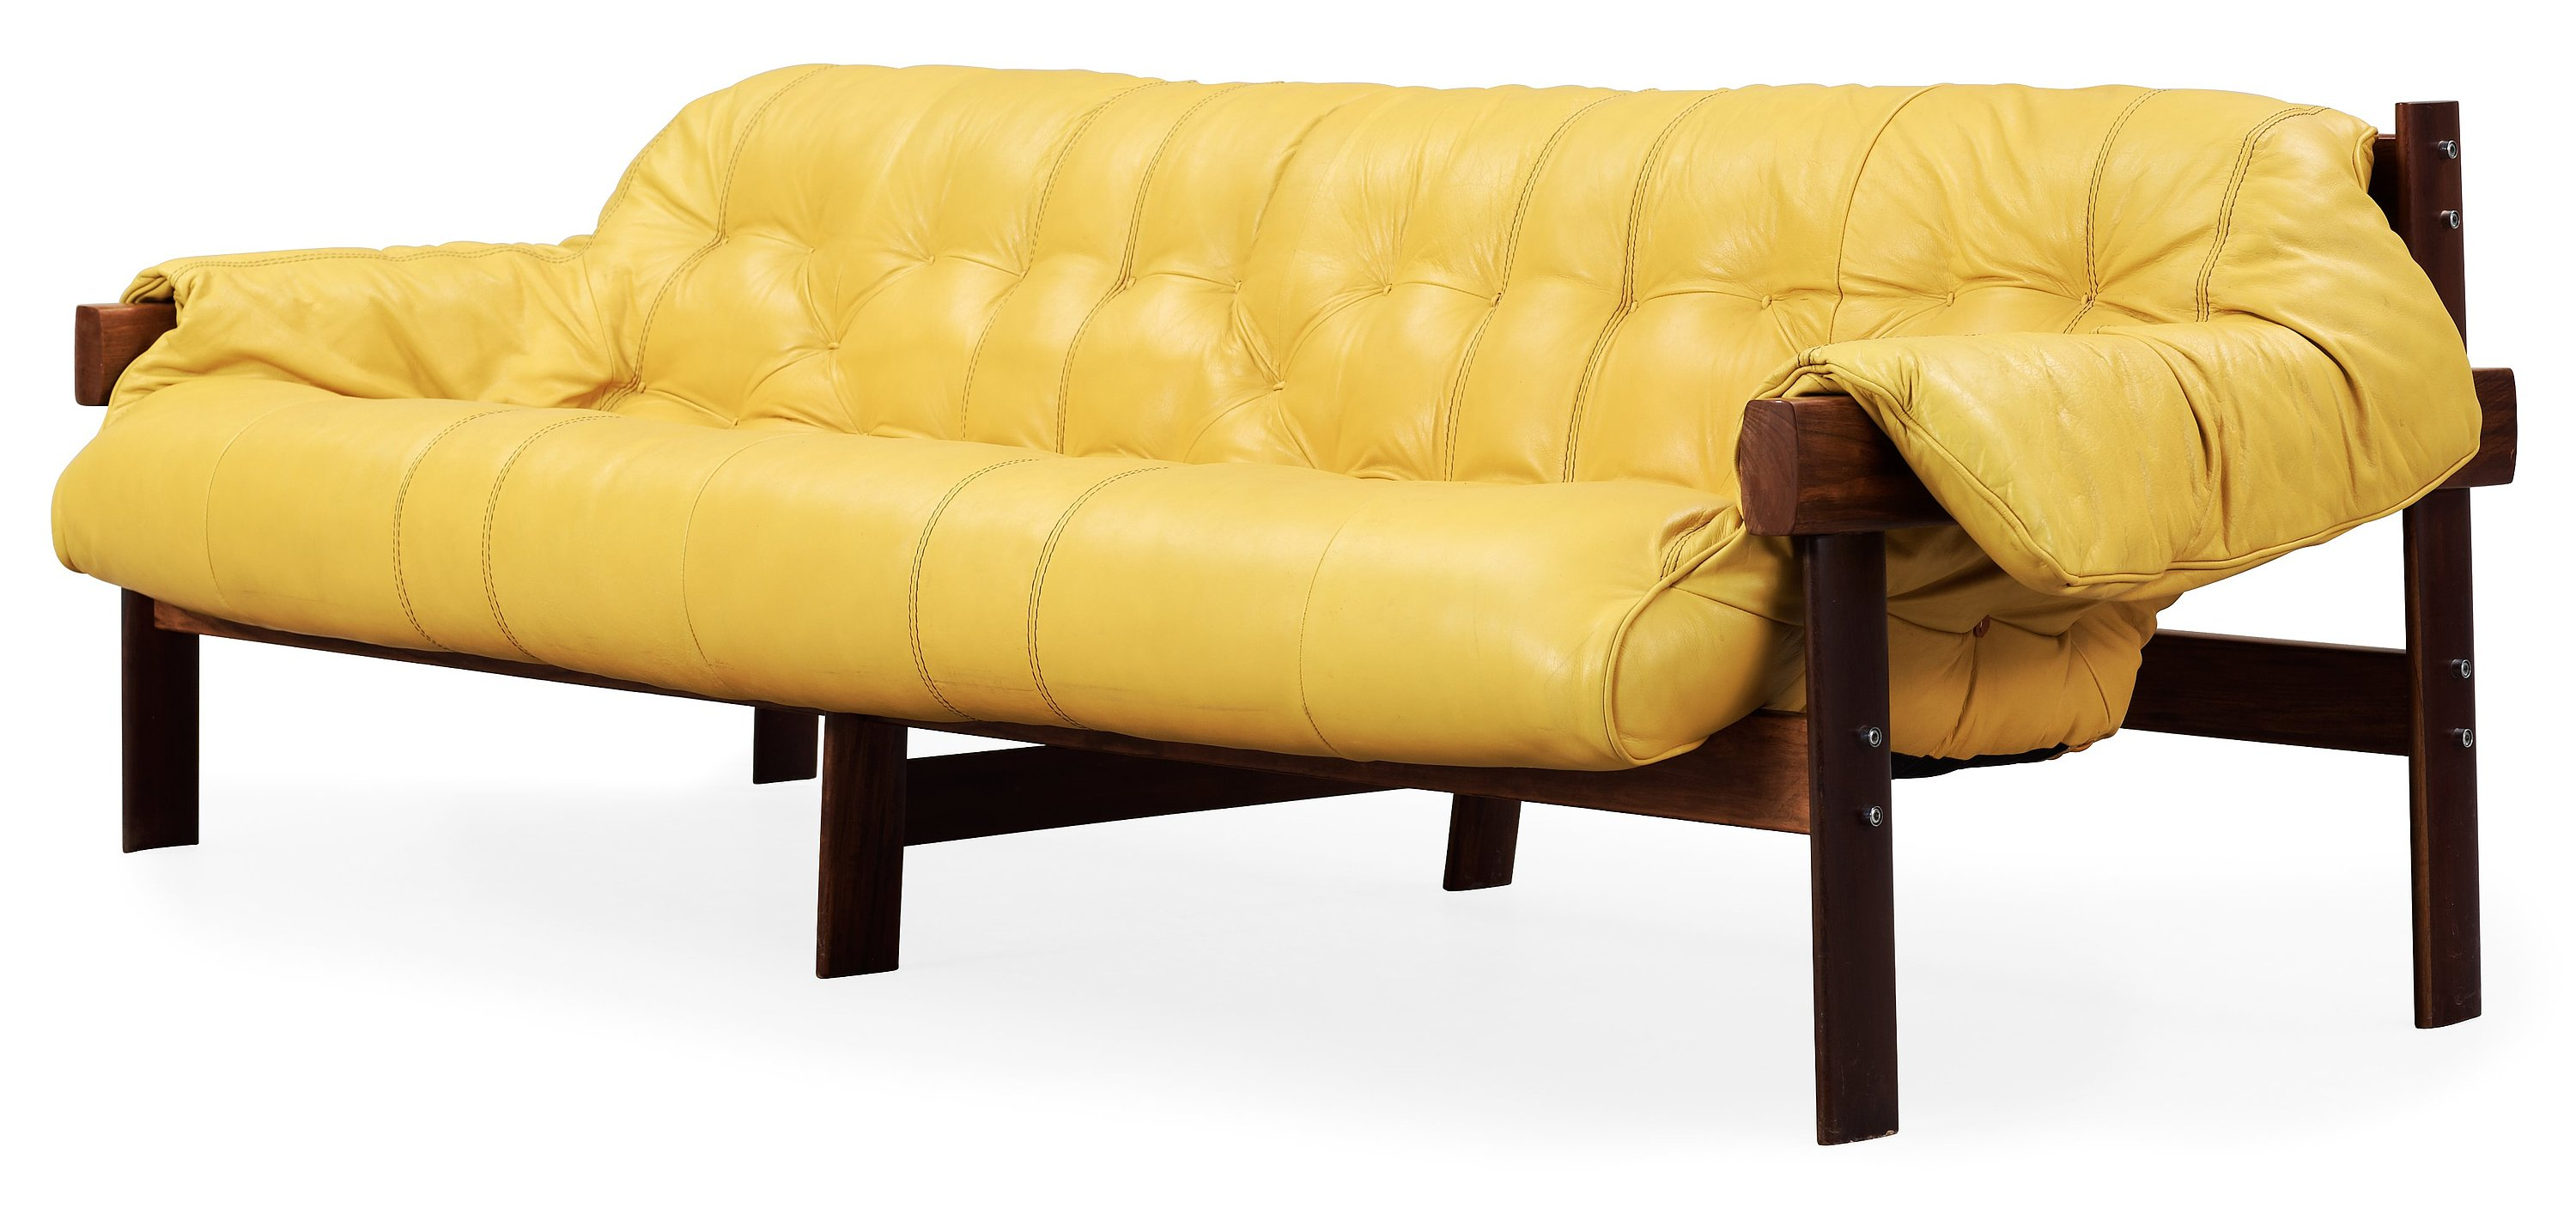 A Percival Lafer Palisander And Yellow Leather Sofa Lafer Mp Brasil 1970 39 S Bukowskis